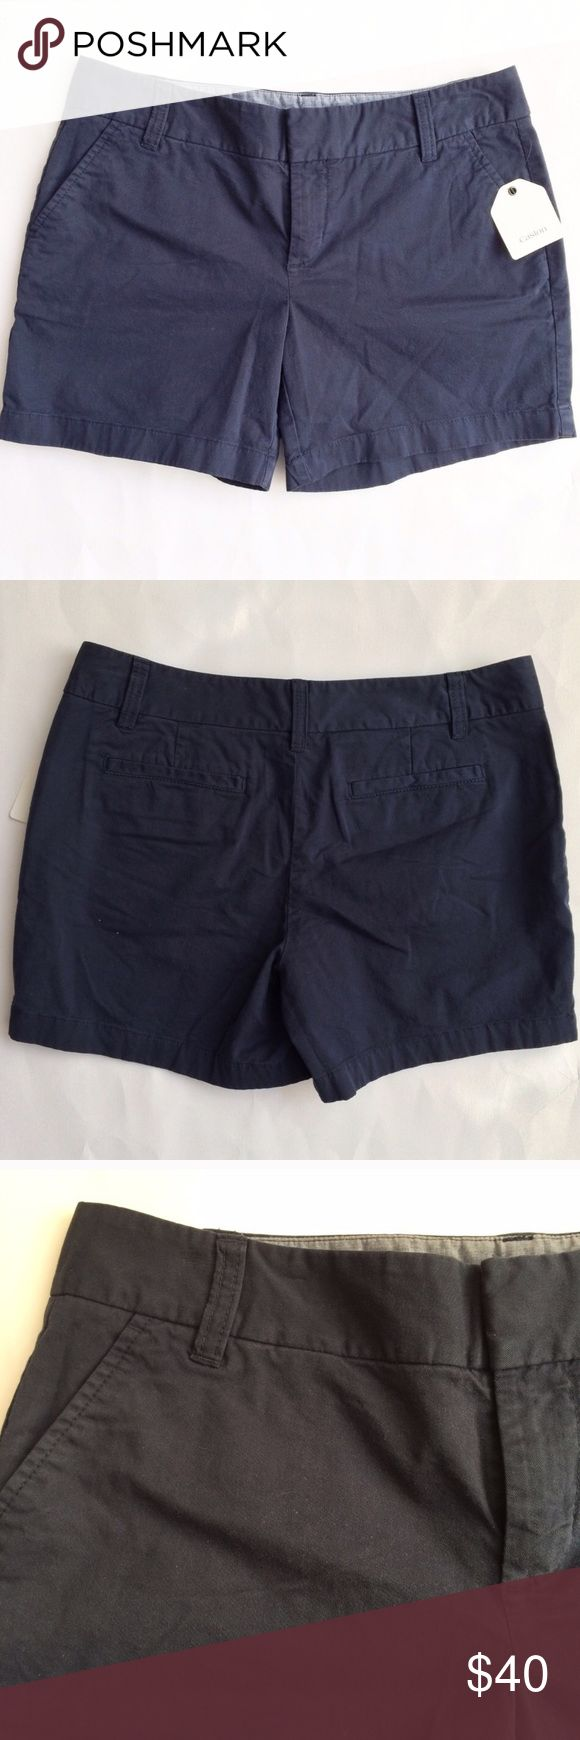 """Nordstrom CASLON Navy blue Chino Shorts NWT Brand new with tags. Zipper and tab closure. Navy blue. Waist 15.5"""". Inseam 4.5"""". Cotton and spandex. Caslon Shorts"""